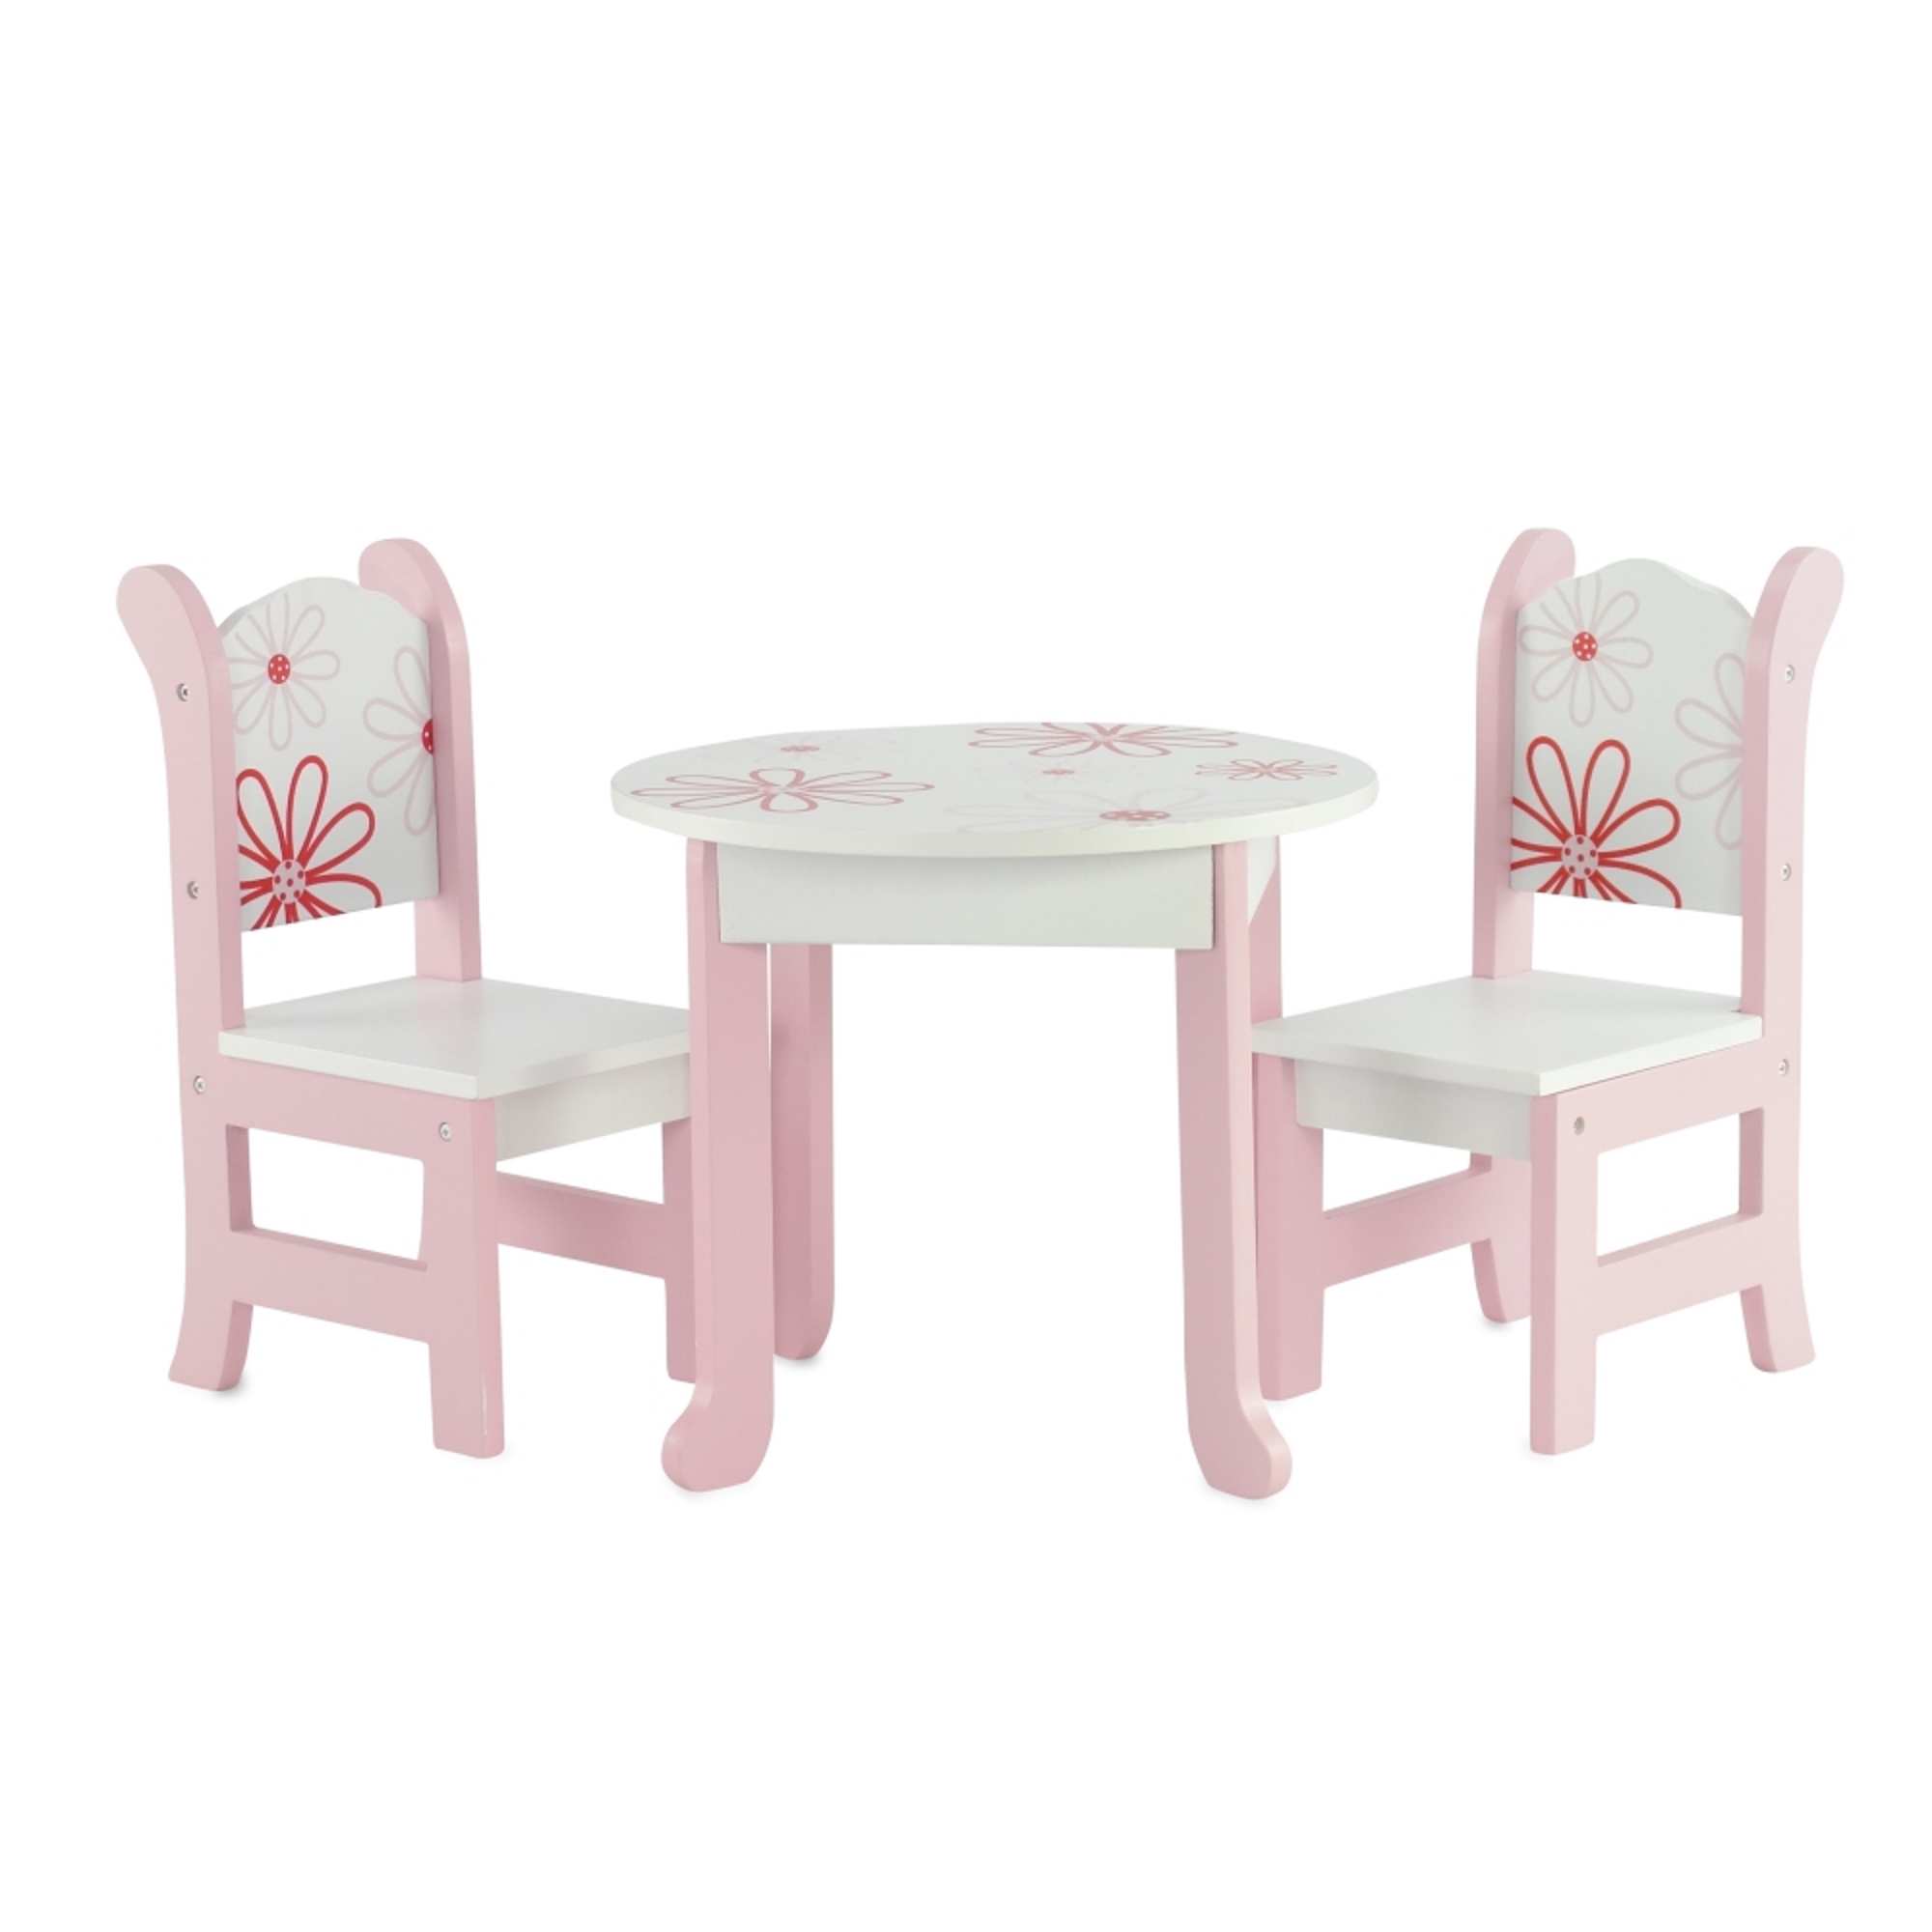 18 Inch Doll Furniture Fits 18 American Girl Dolls Floral Table